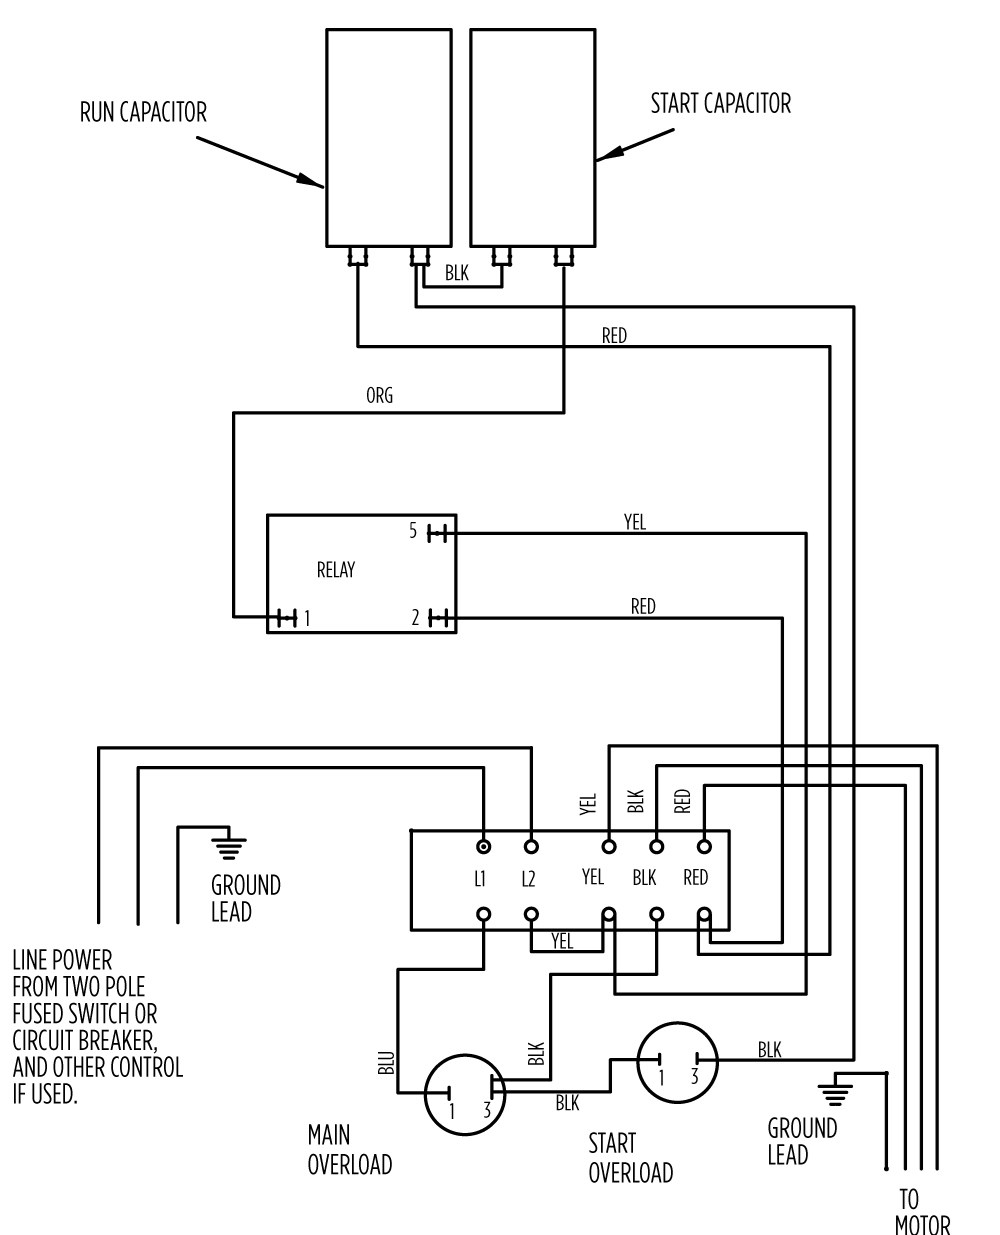 Hotsy Electric Wiring Diagram Free Download Sullair Schematics Aim Manual Page 55 Single Phase Motors And Controls Motor